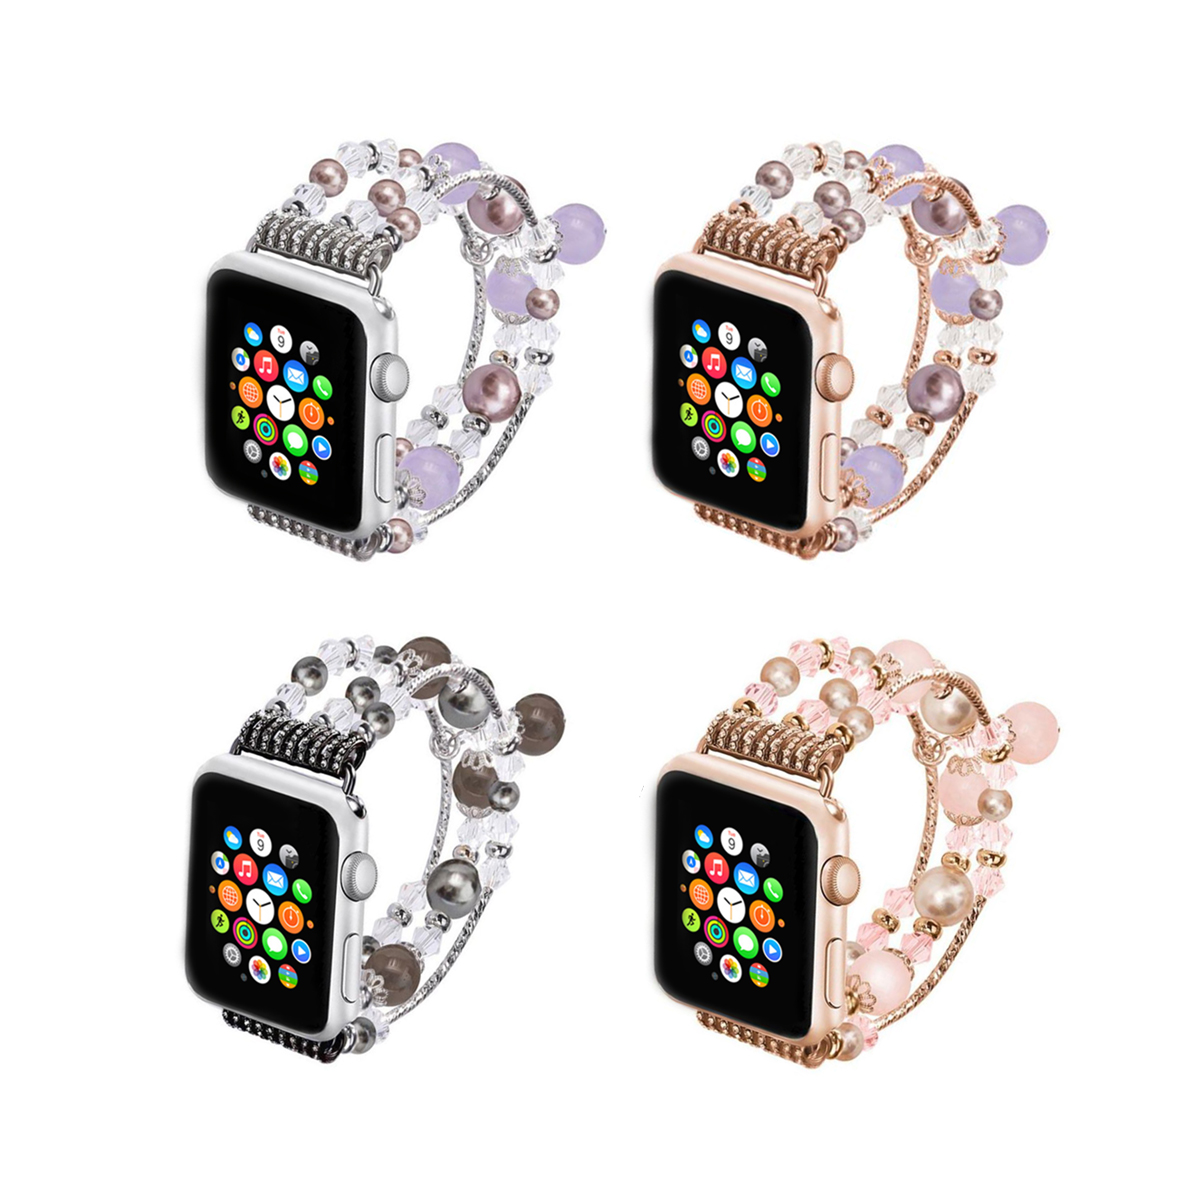 IAG-Jeweled-Replacement-Band-Lifestyle-1200×1200